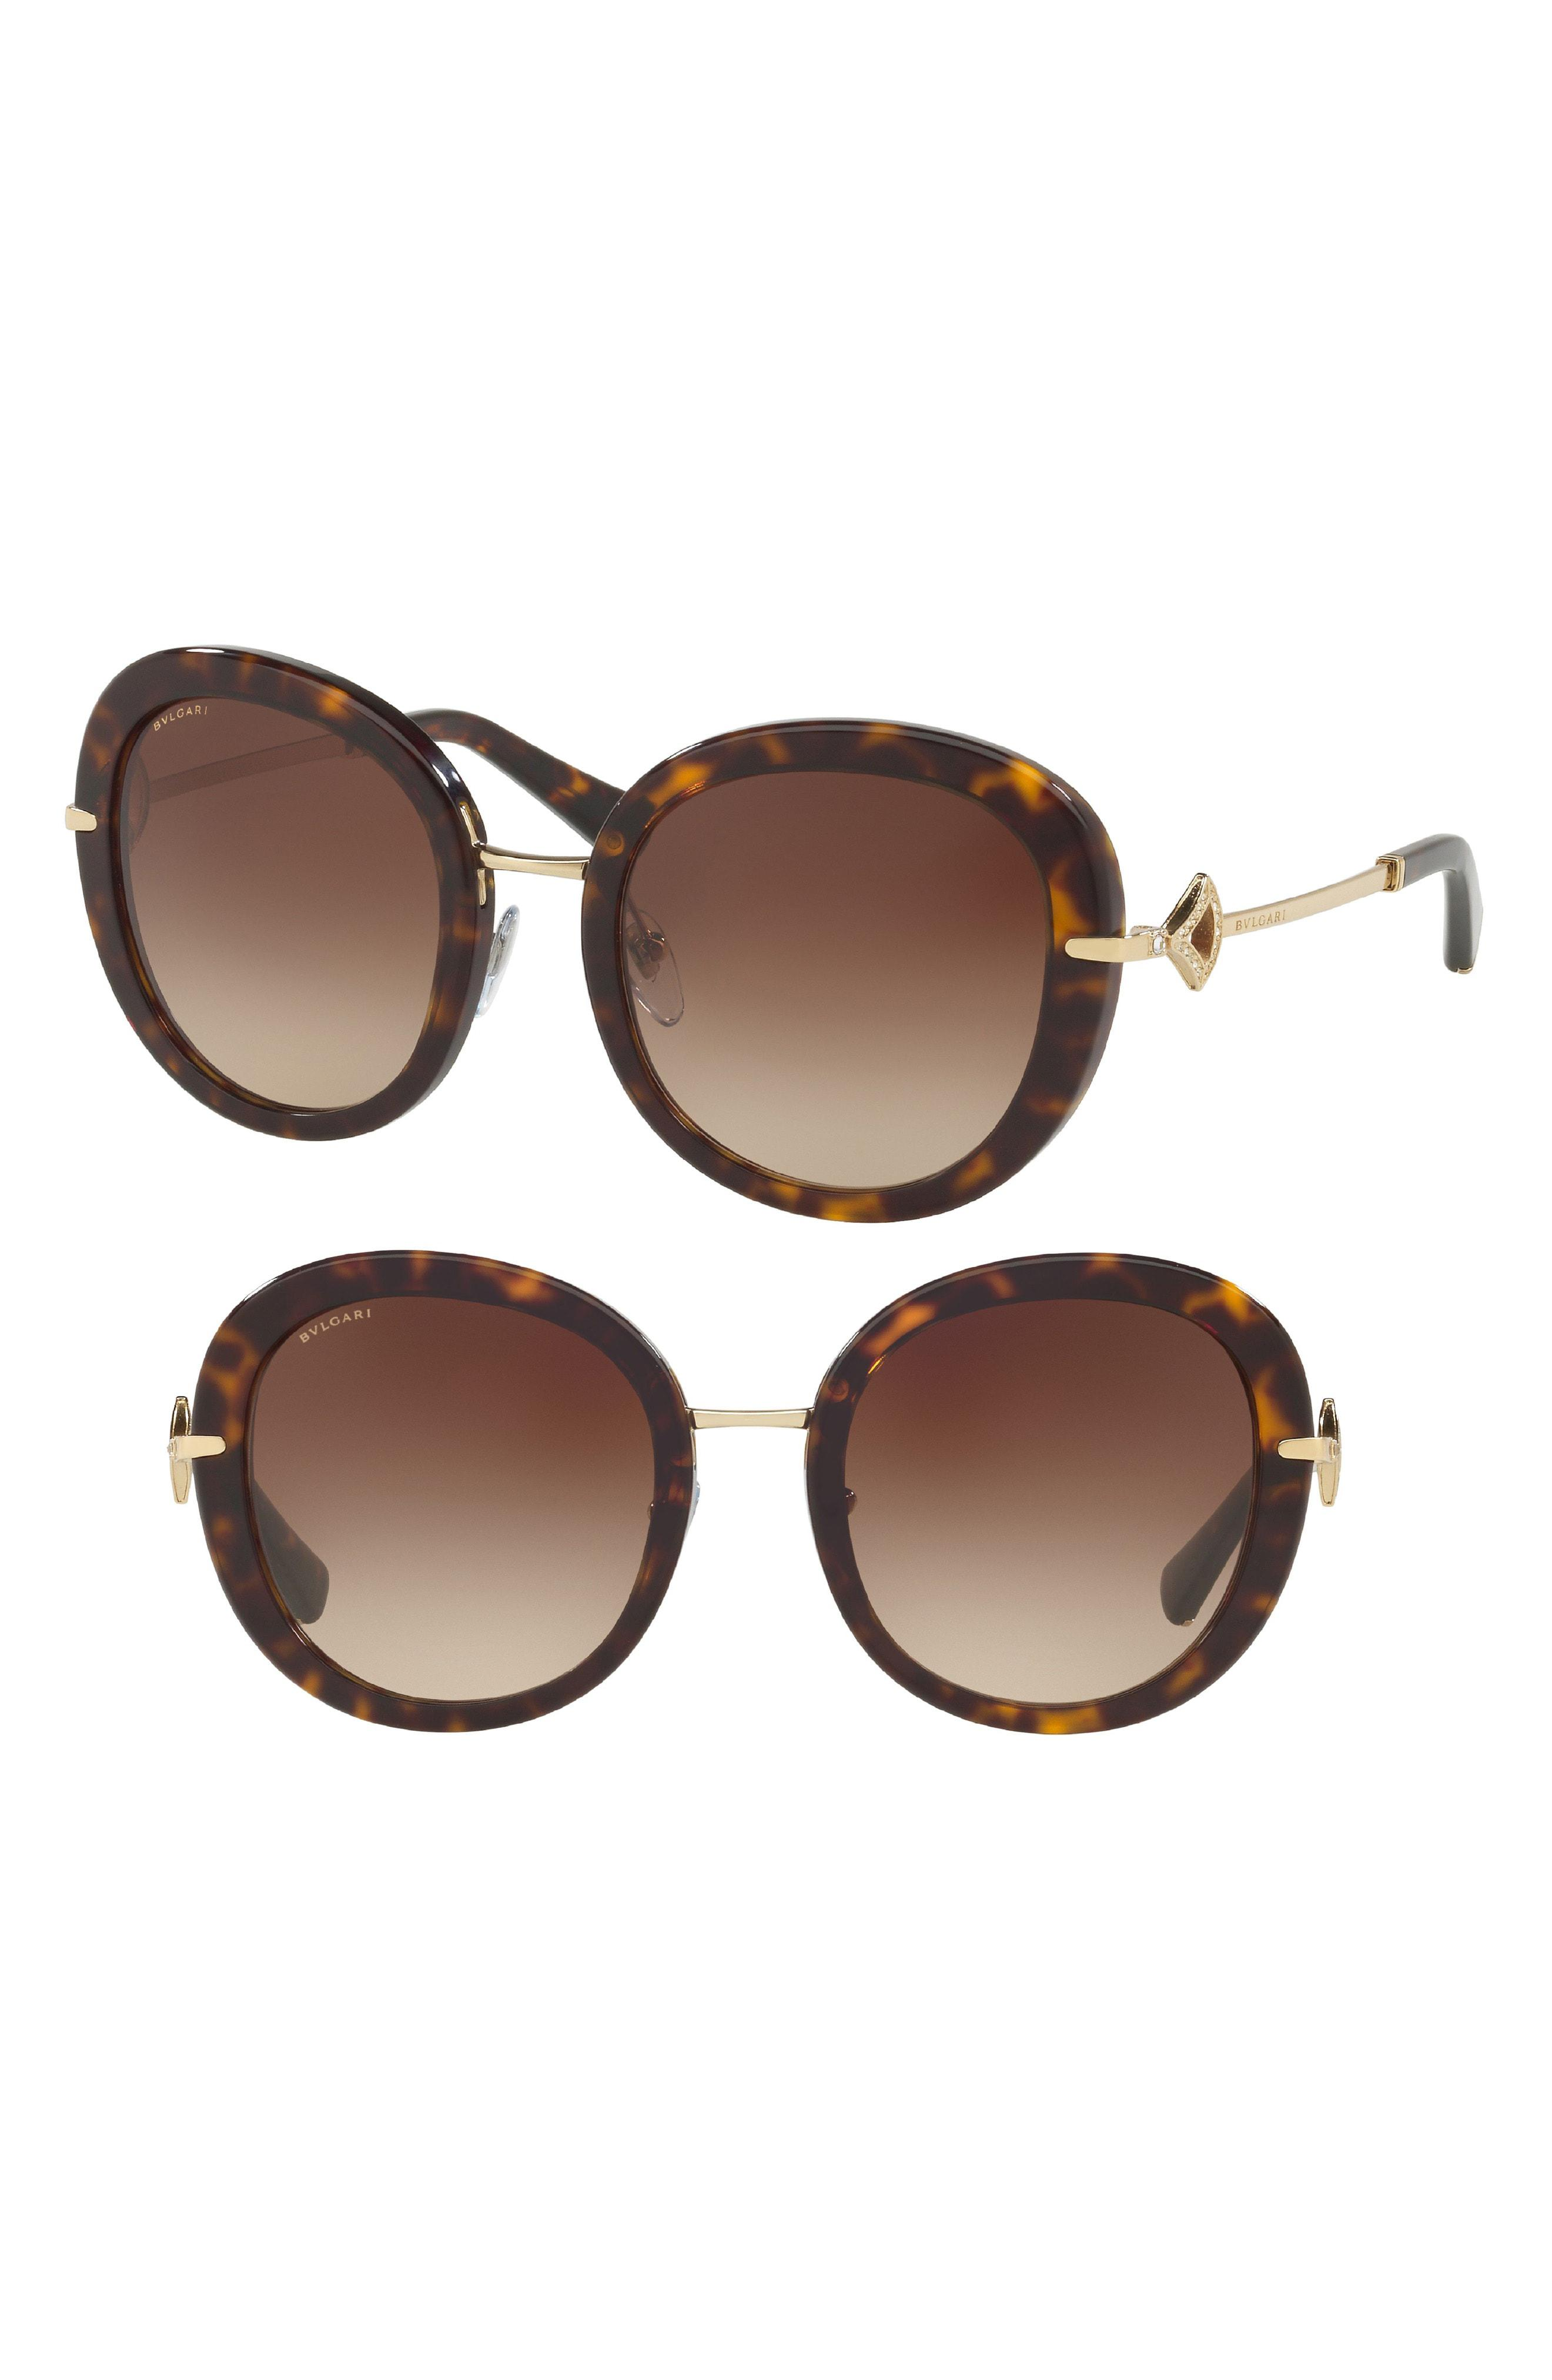 c496350e1dce8 BVLGARI - Brown 53mm Gradient Sunglasses - - Lyst. View fullscreen